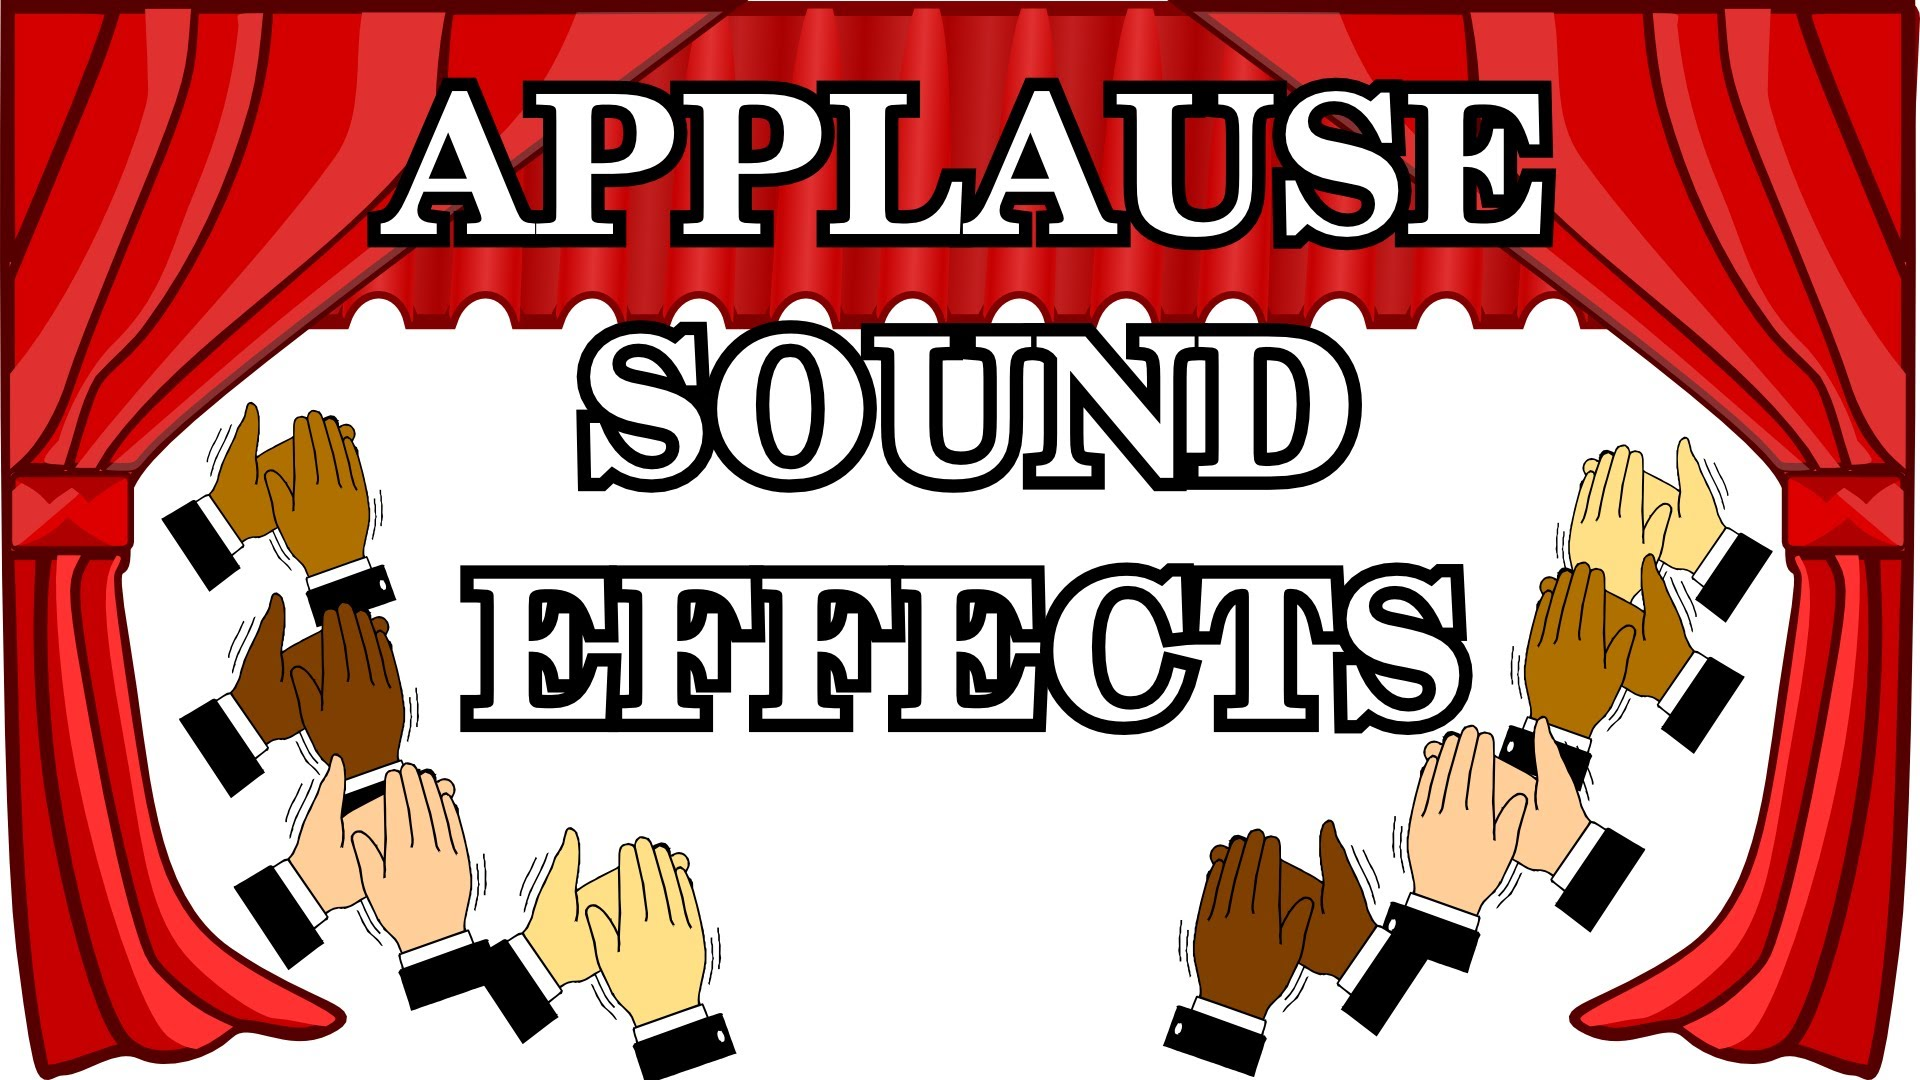 Applause sound effect high quality free download youtube clipart